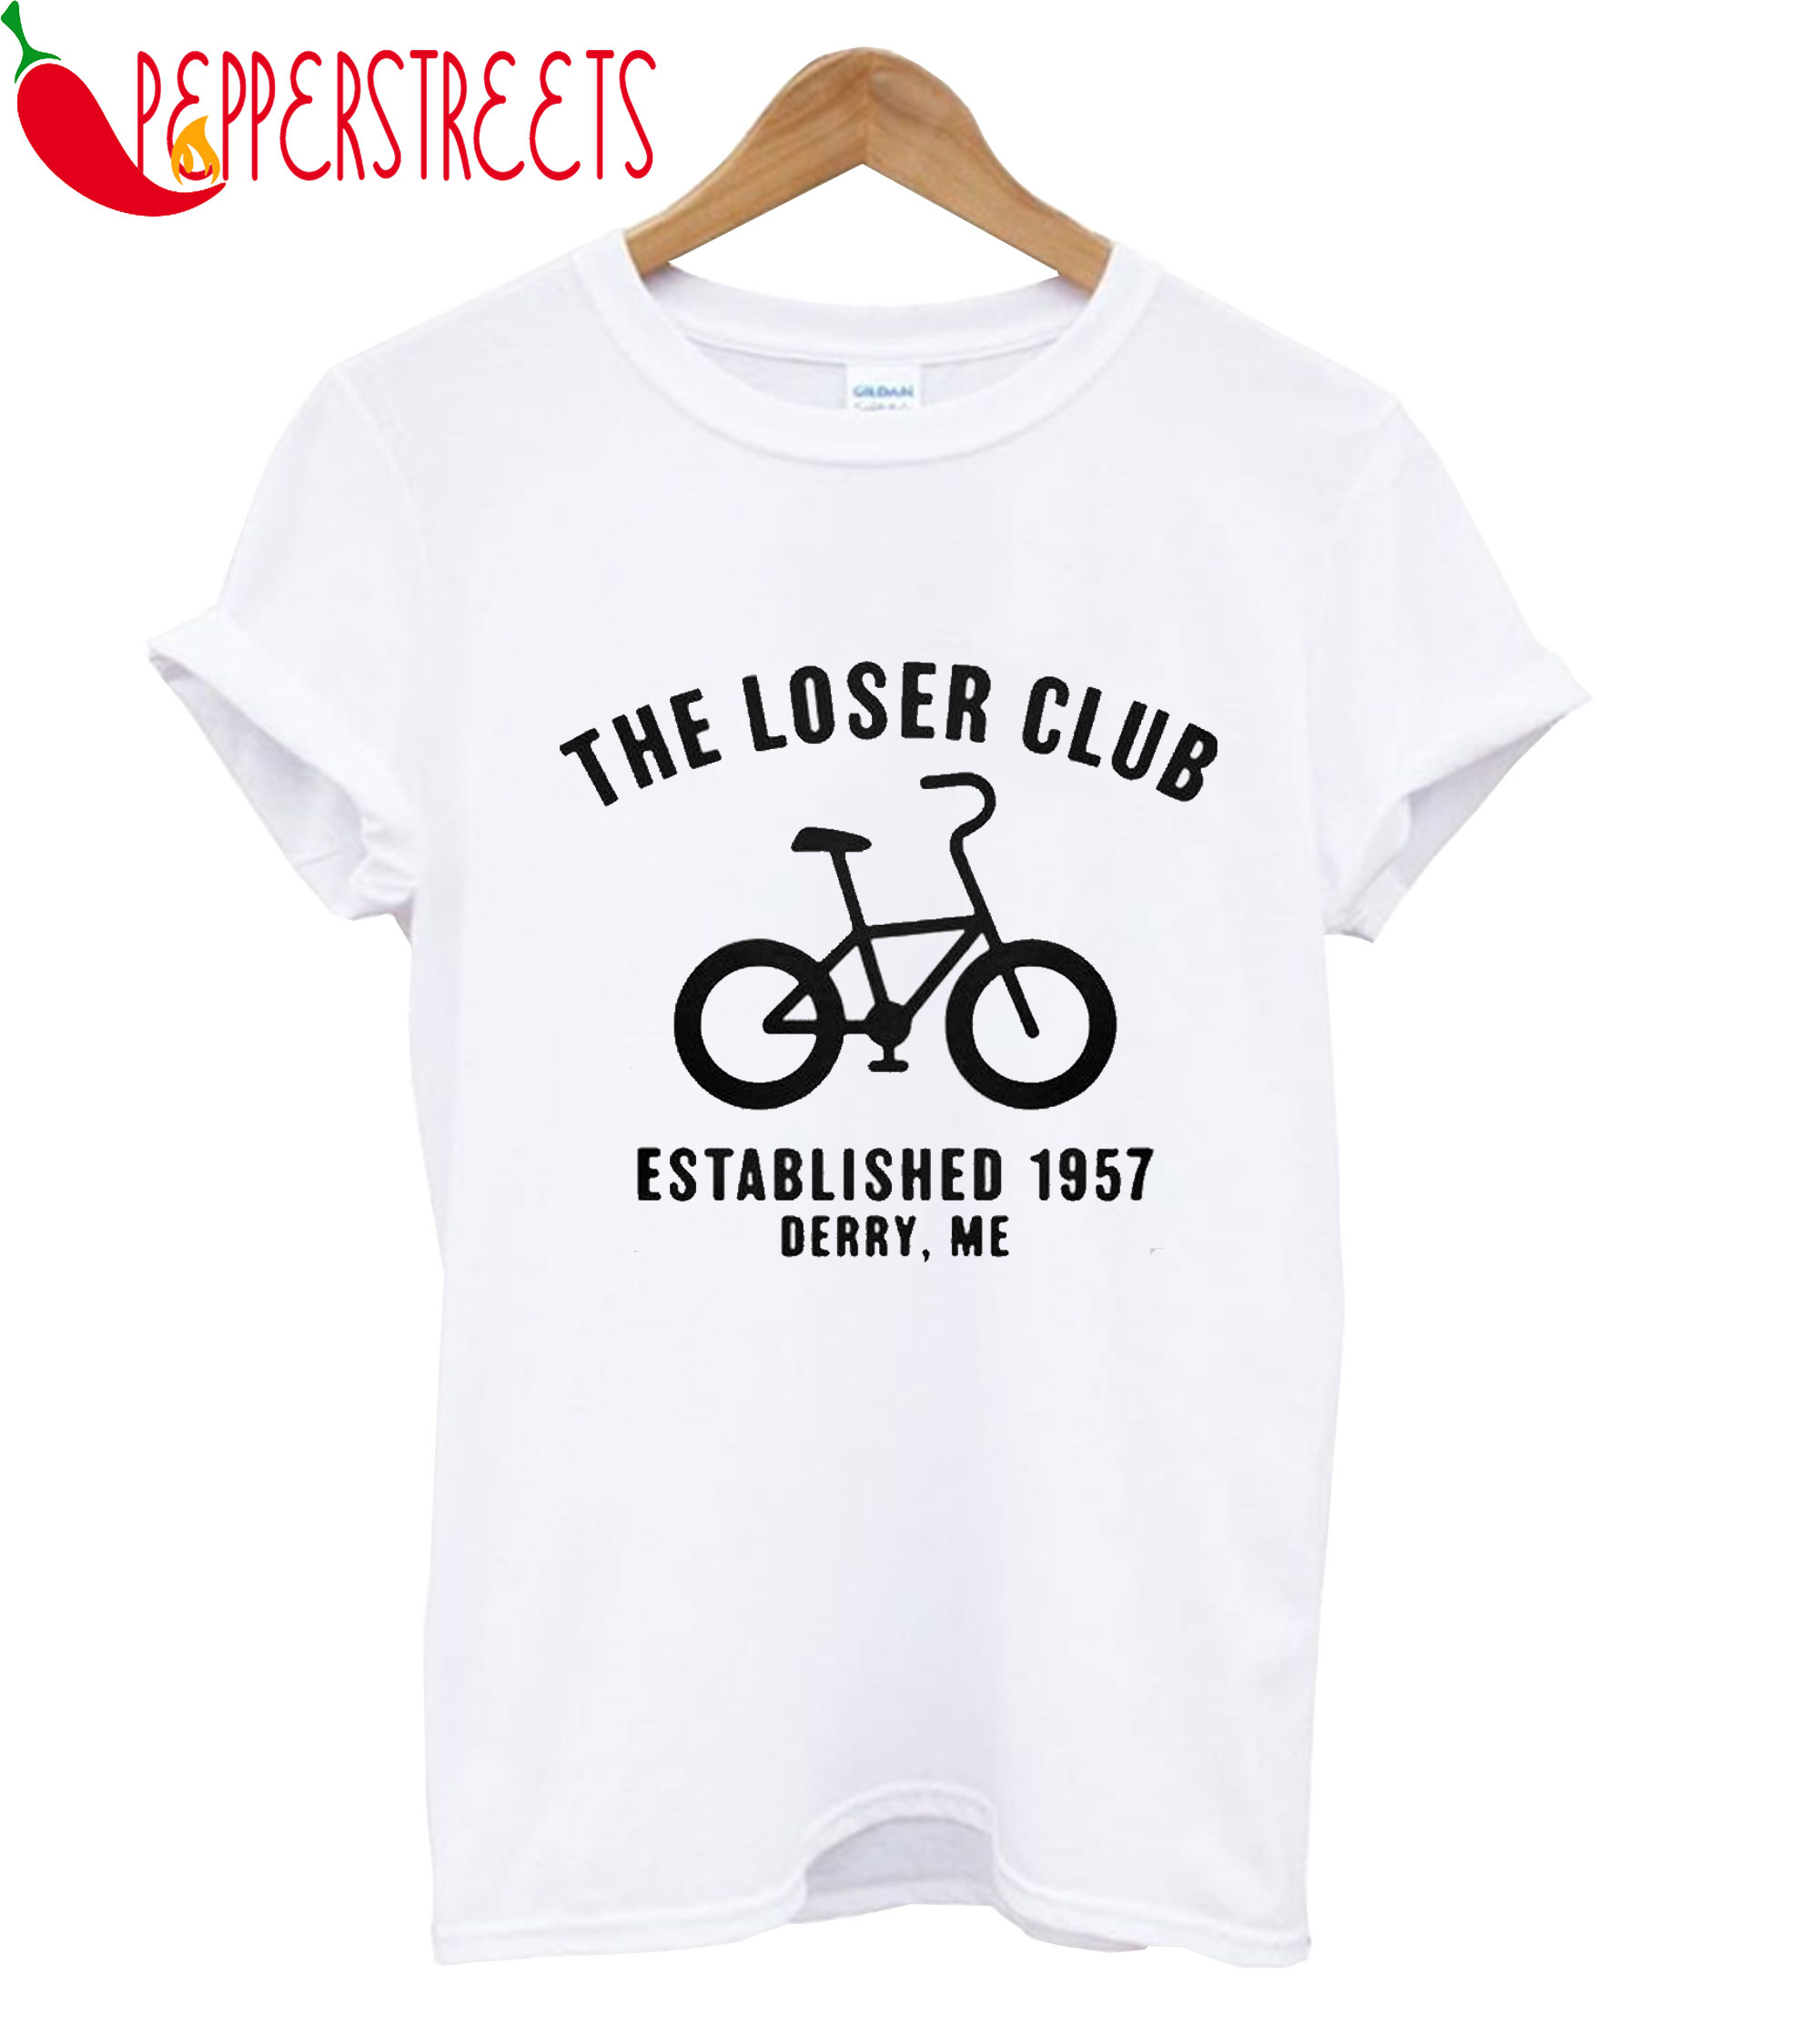 The Loser Club Established 1957 Derry Me T-Shirt